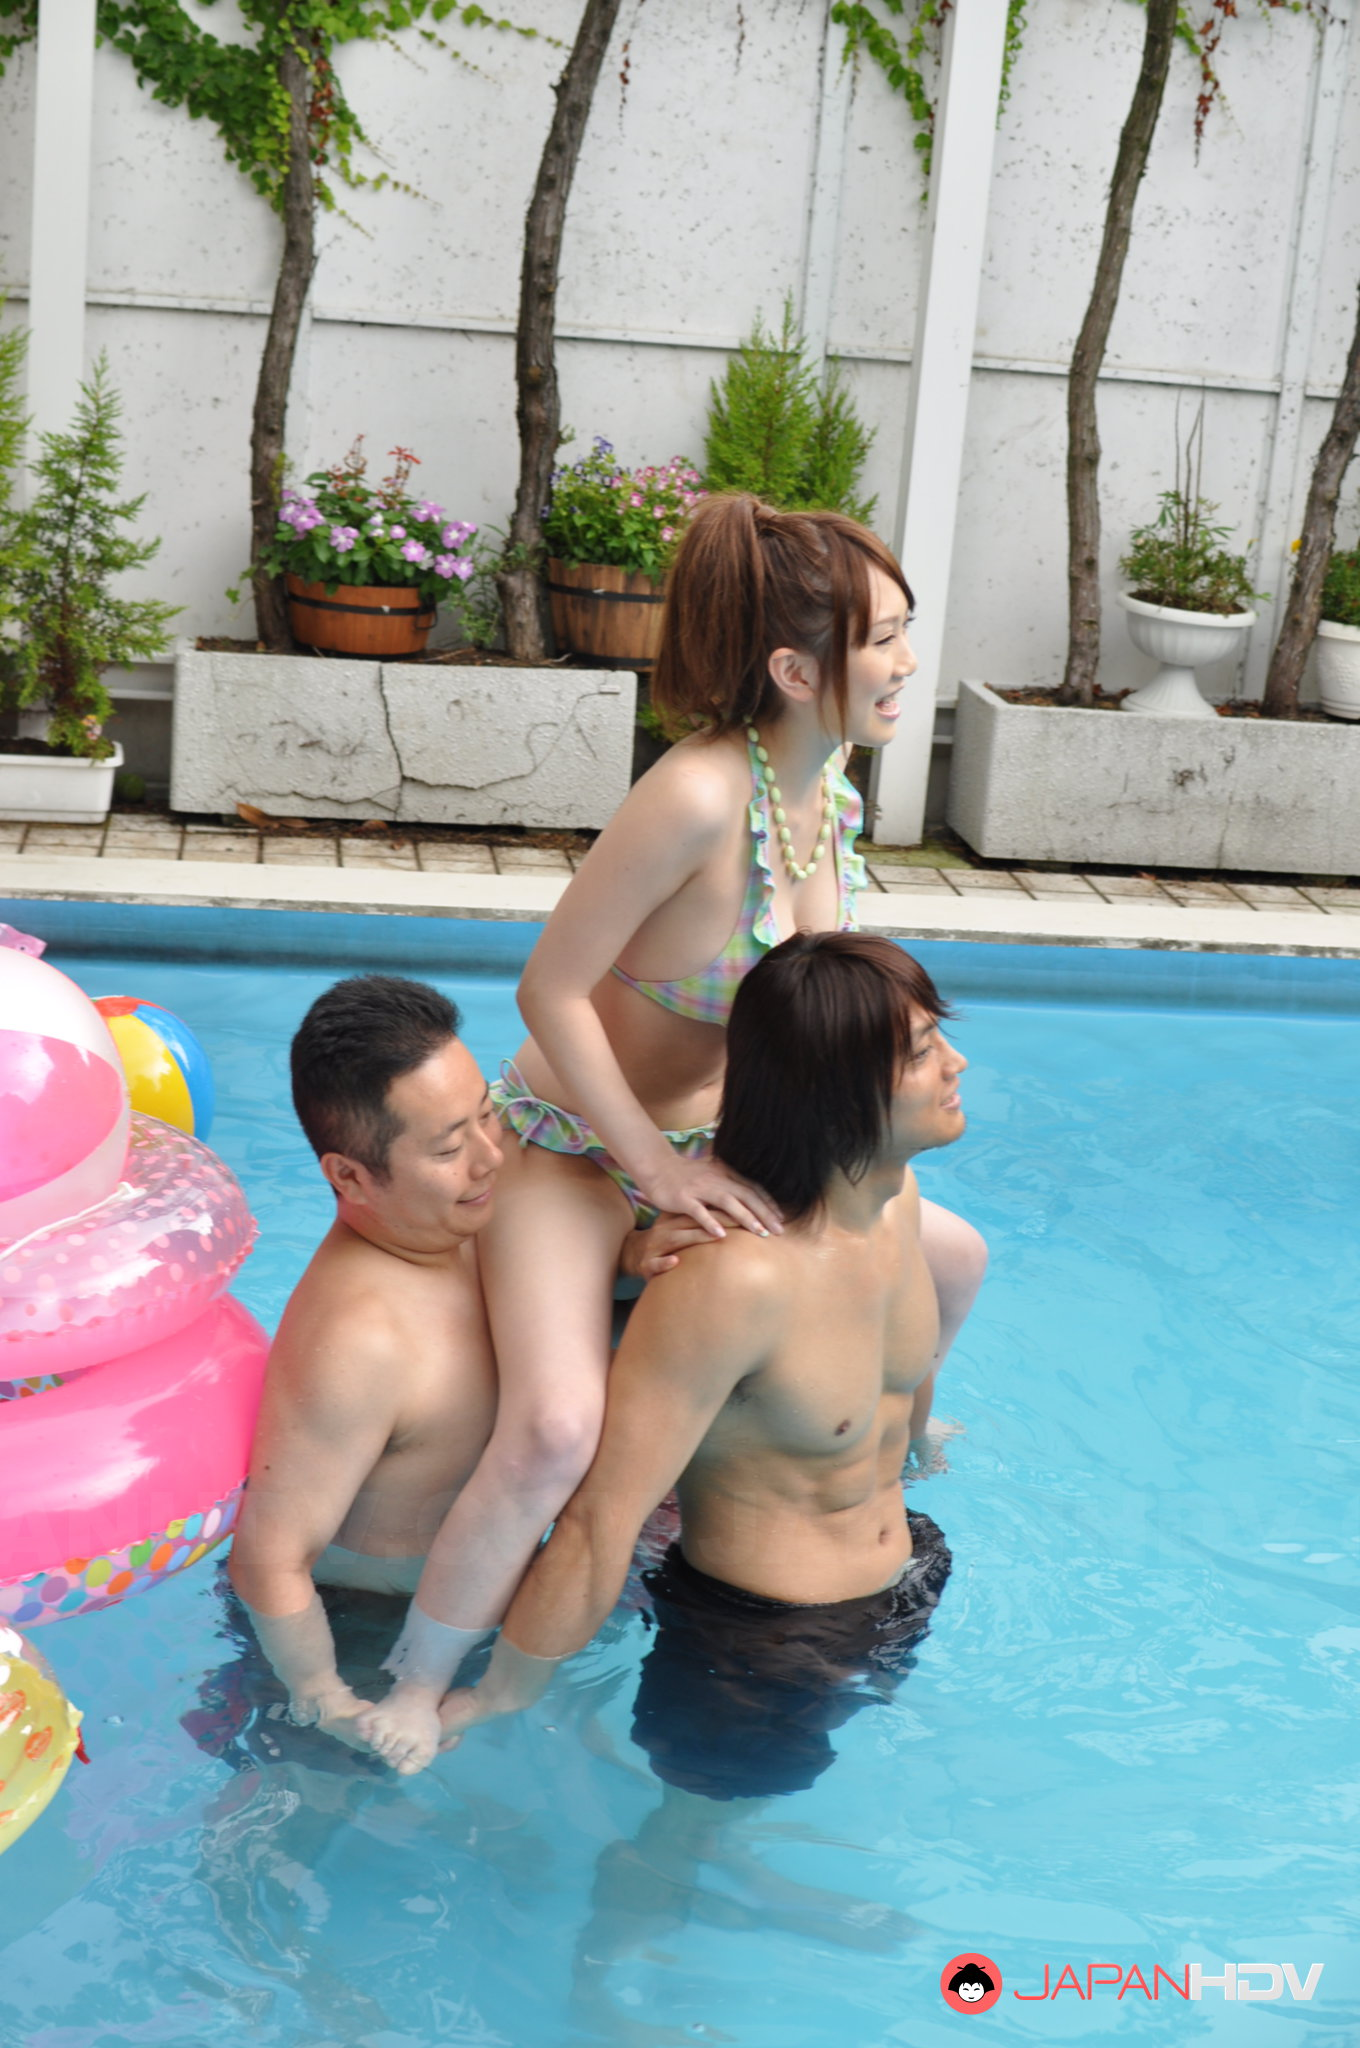 Japanese girls enjoy in some sexy pool party